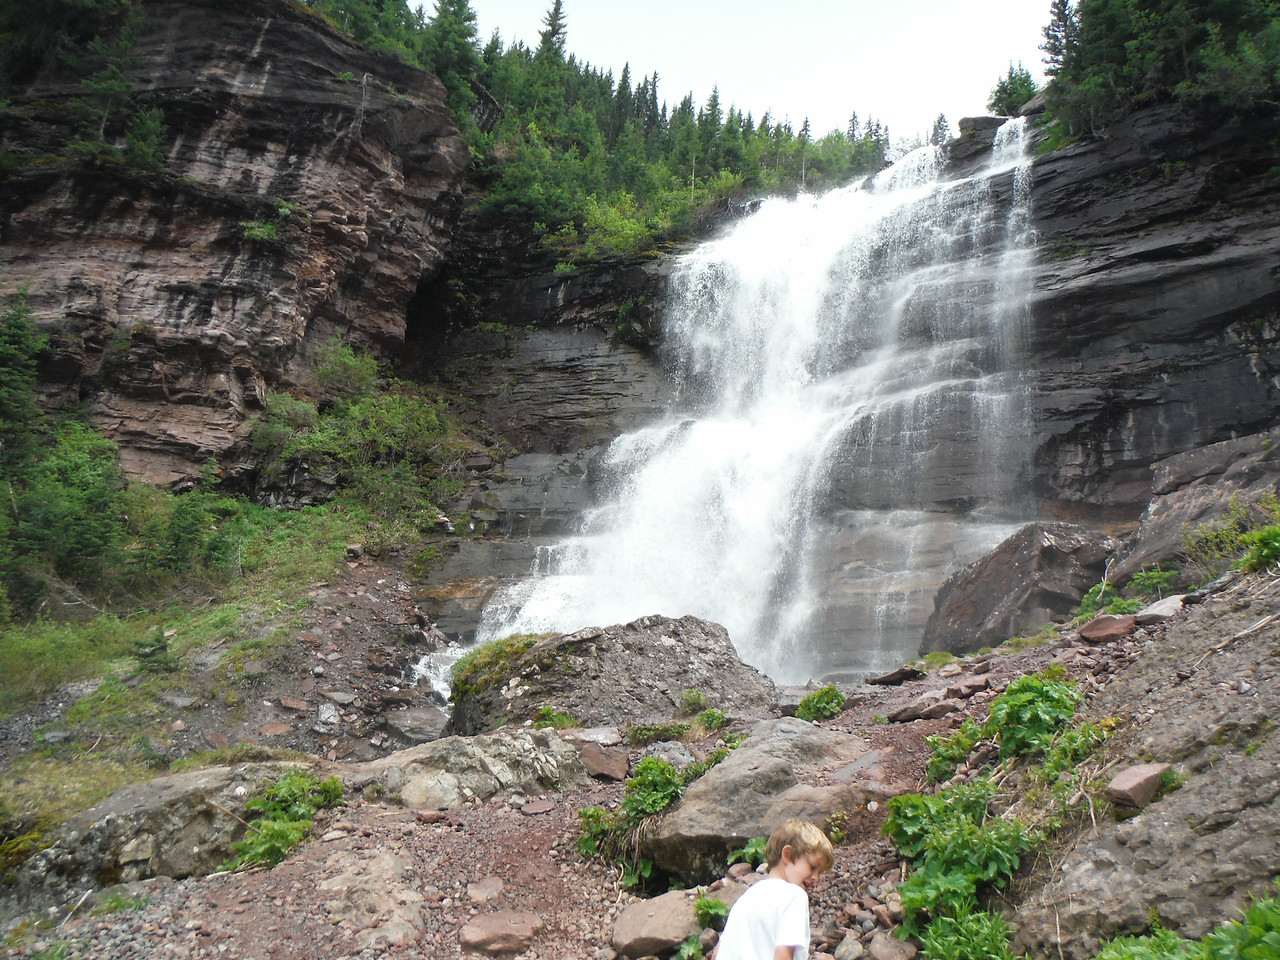 Bear Creek Falls. So beautiful and worth the hike up.